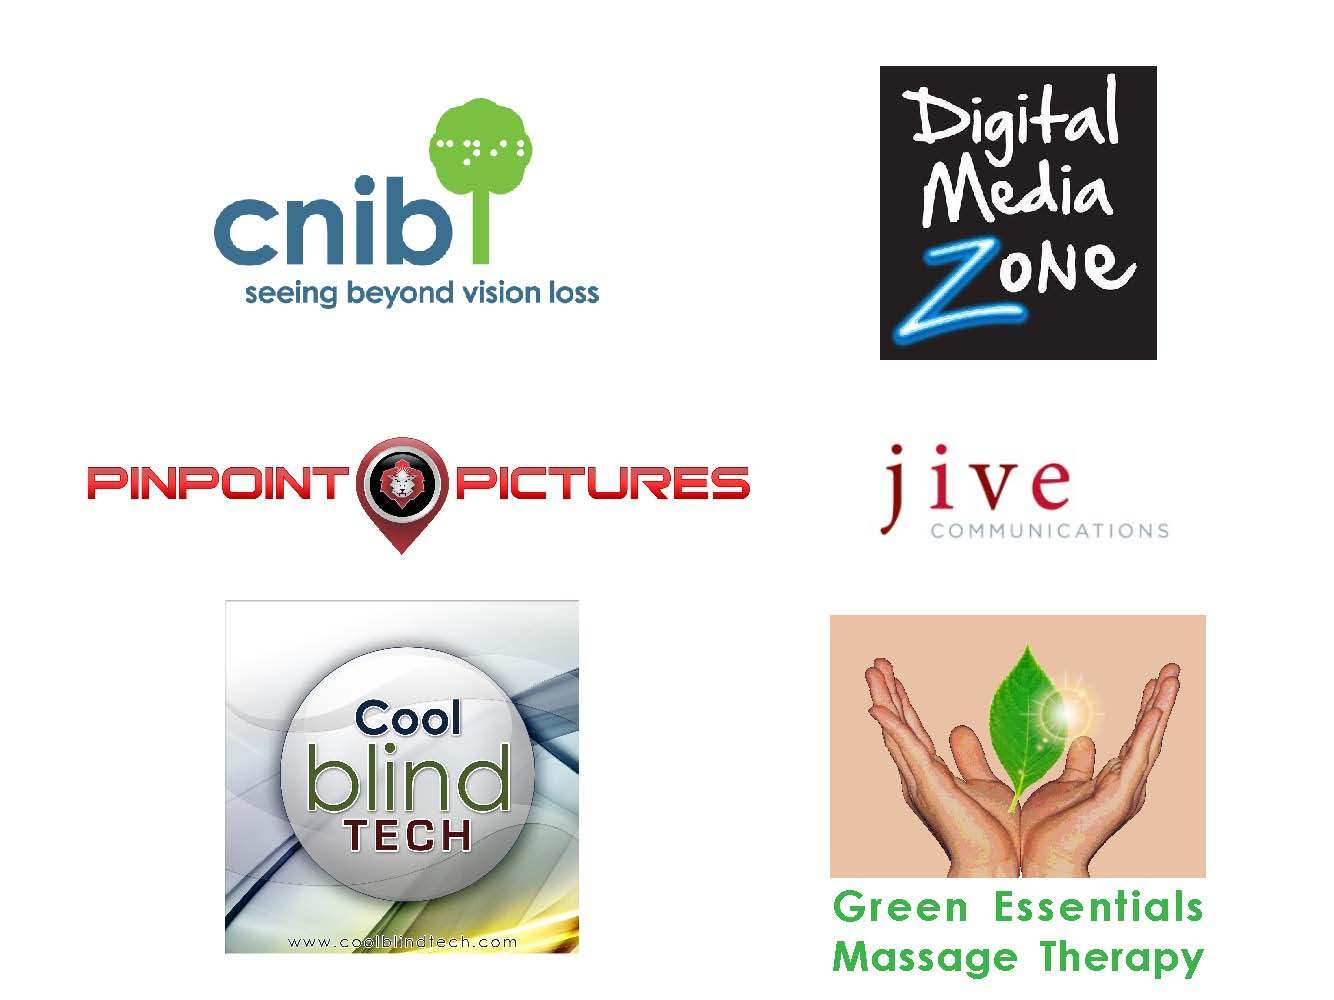 Logos, CNIB, Ryerson Digital media Zone, Pinpoint Pictures, Jive Communications, CoolBlindTech, Green Essentials Massage Therapy